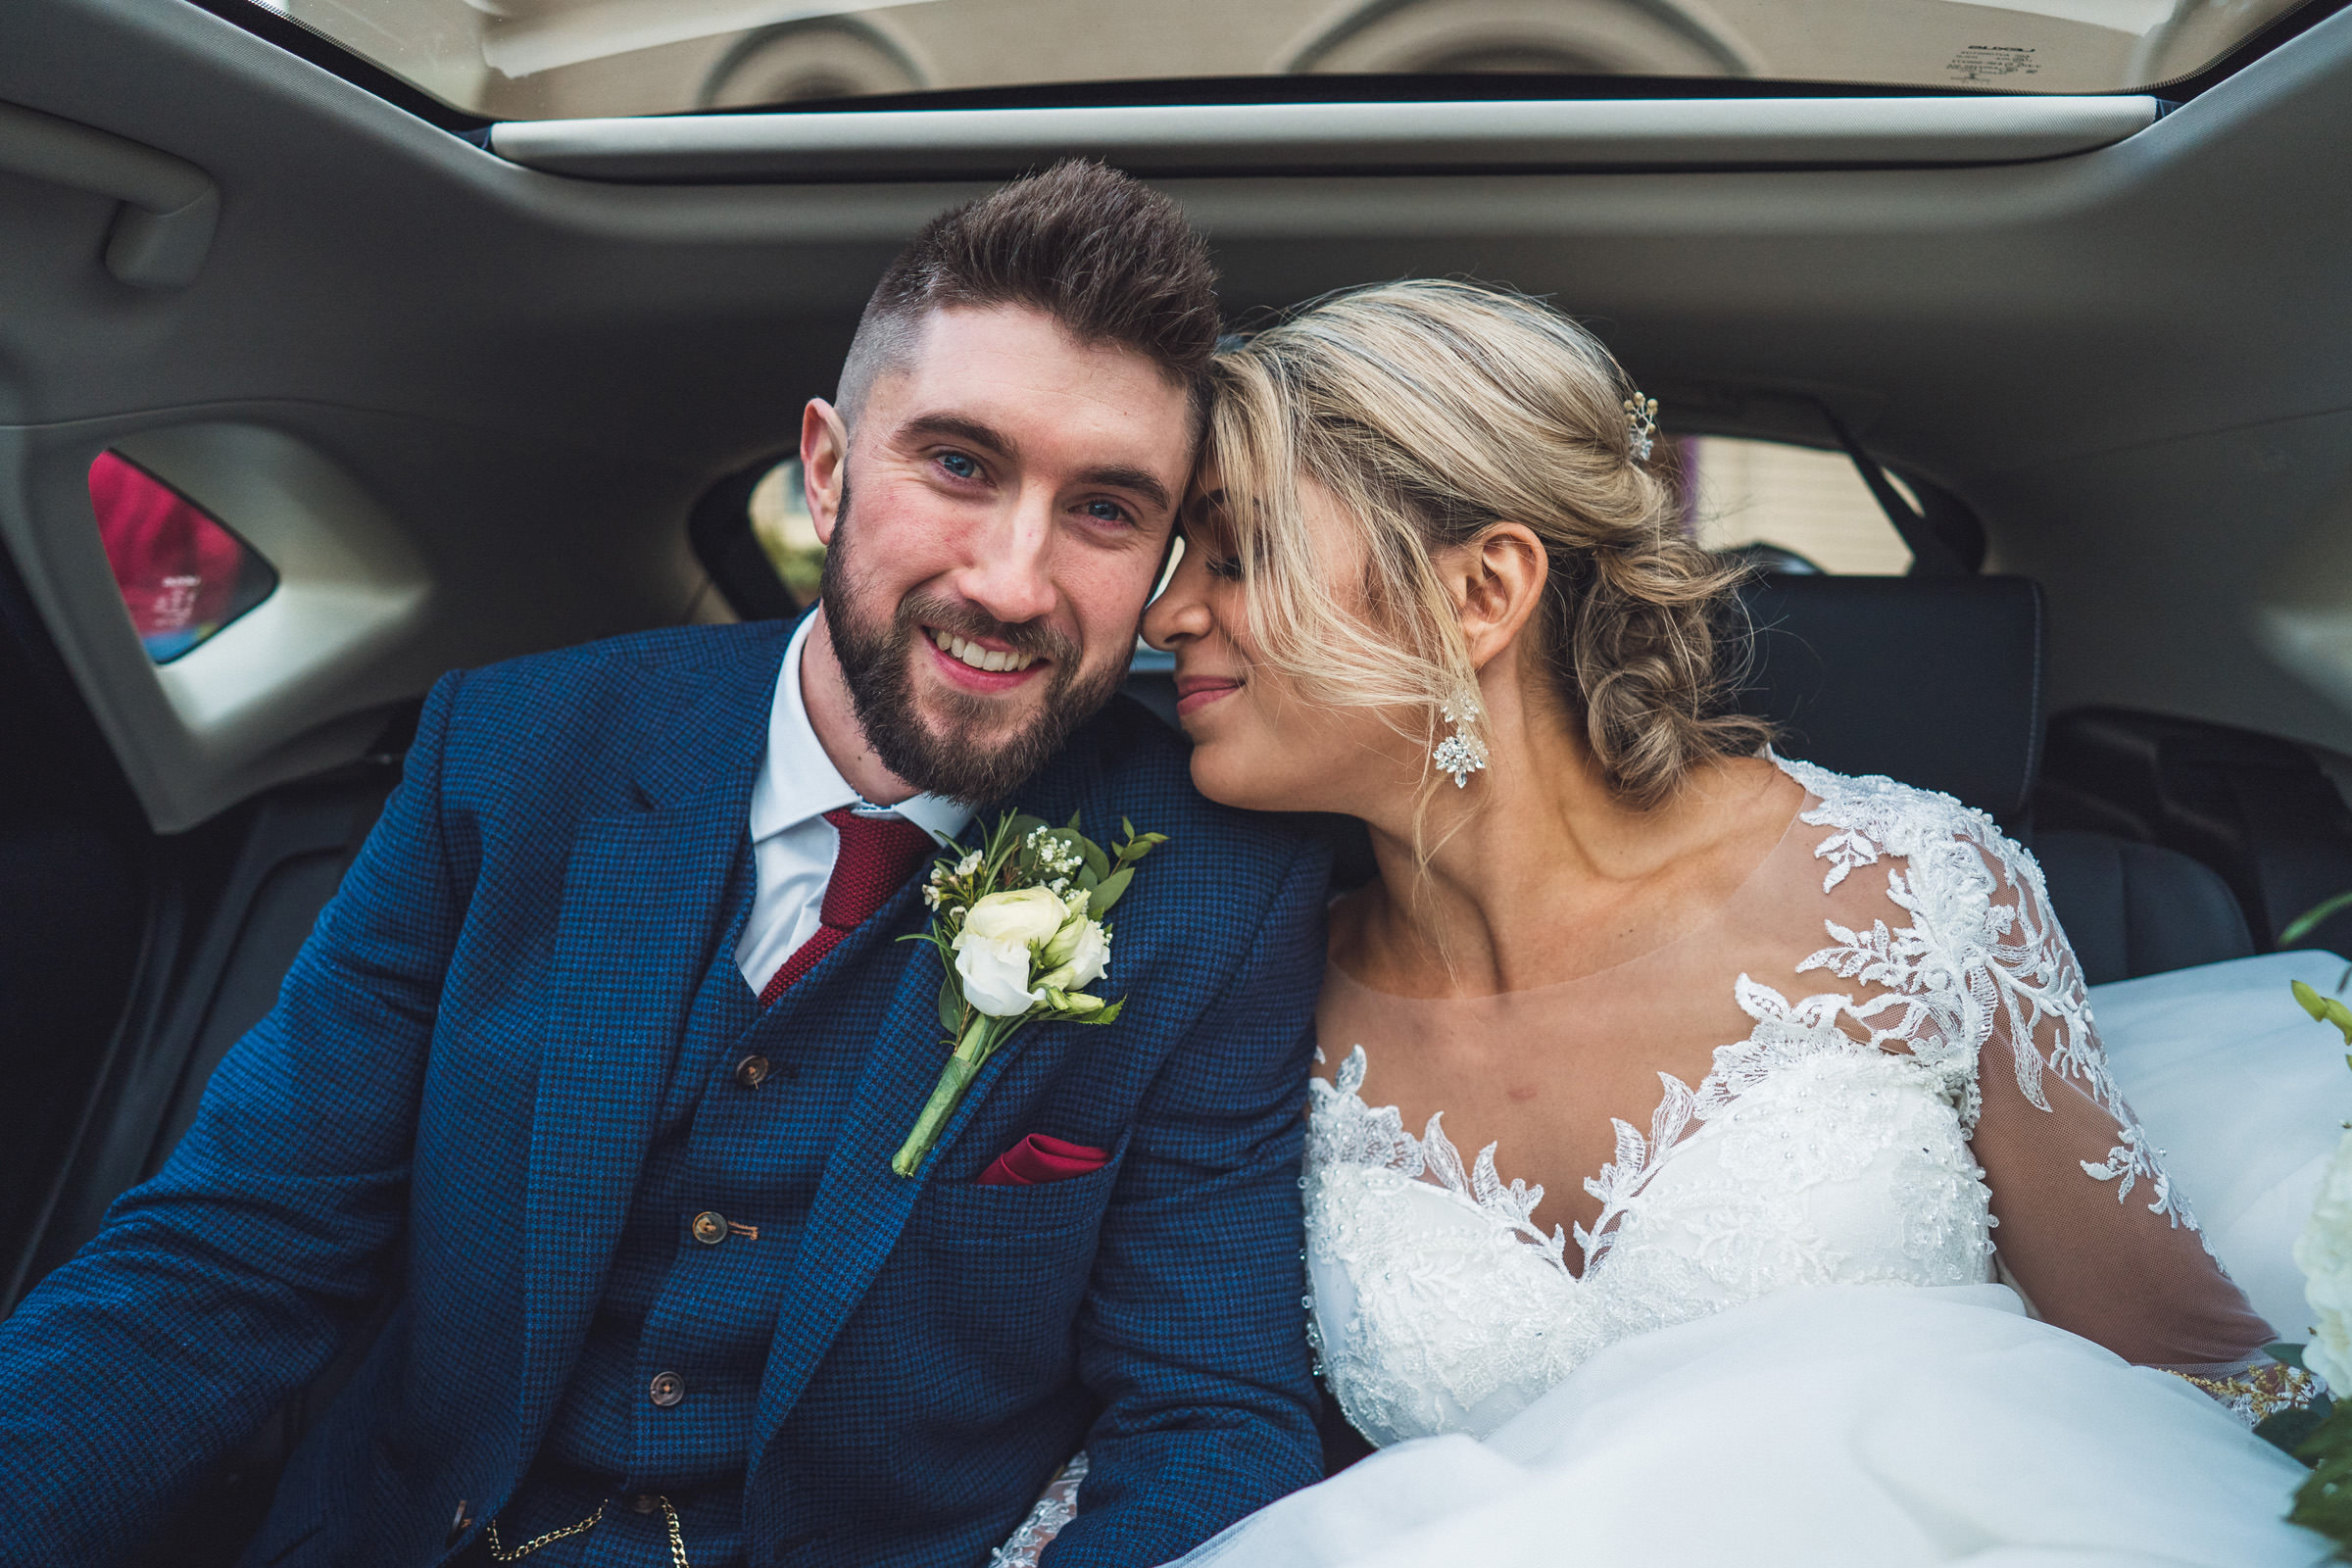 Couple snuggles in limo - photo by The Portrait Rooms